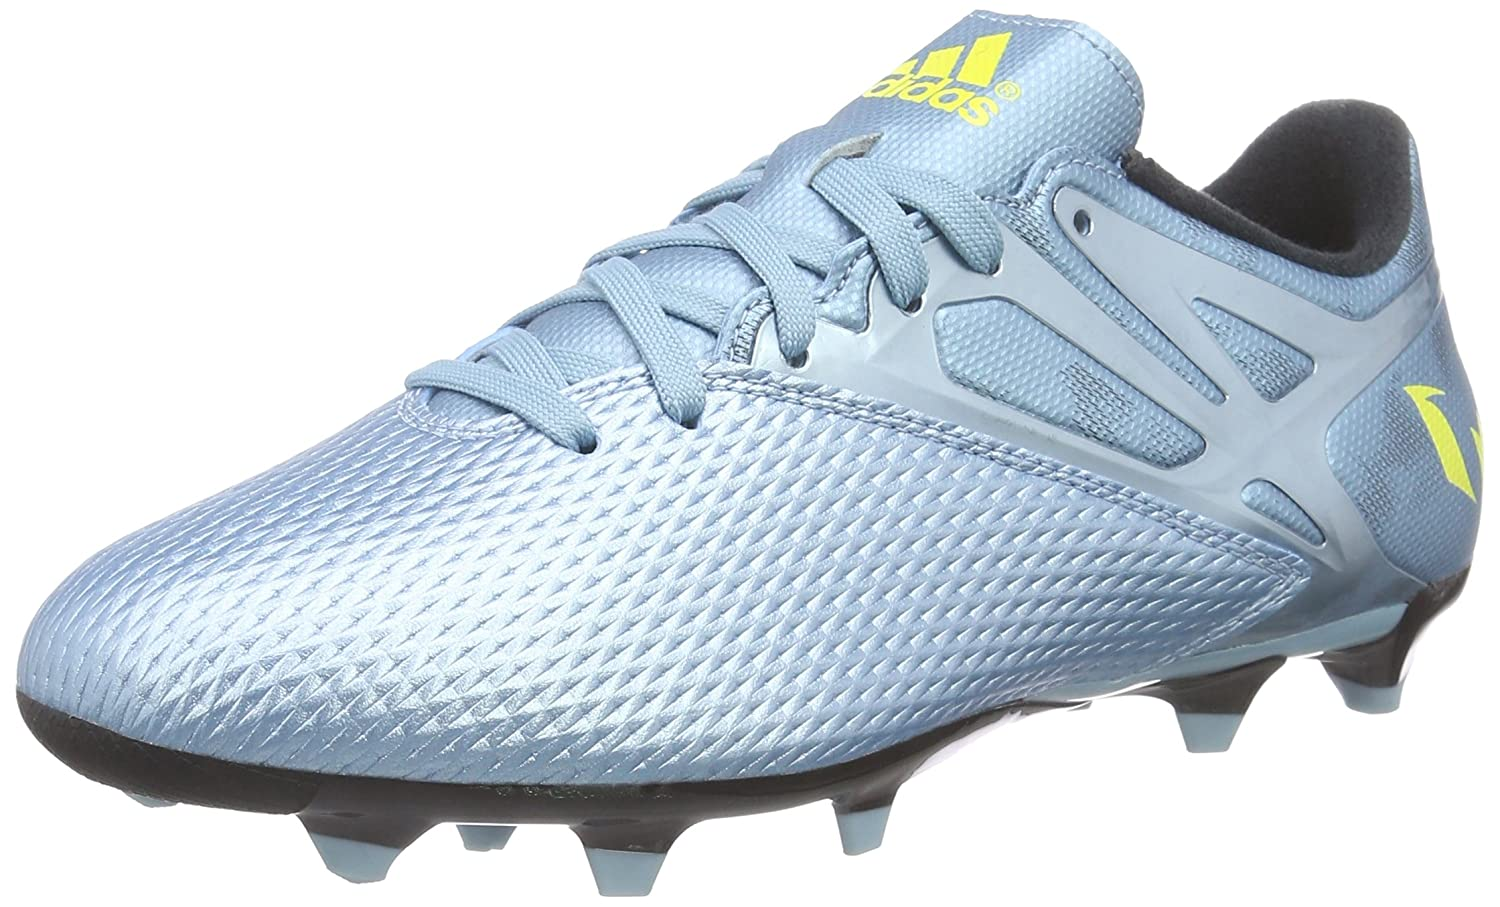 adidas football studs shoes